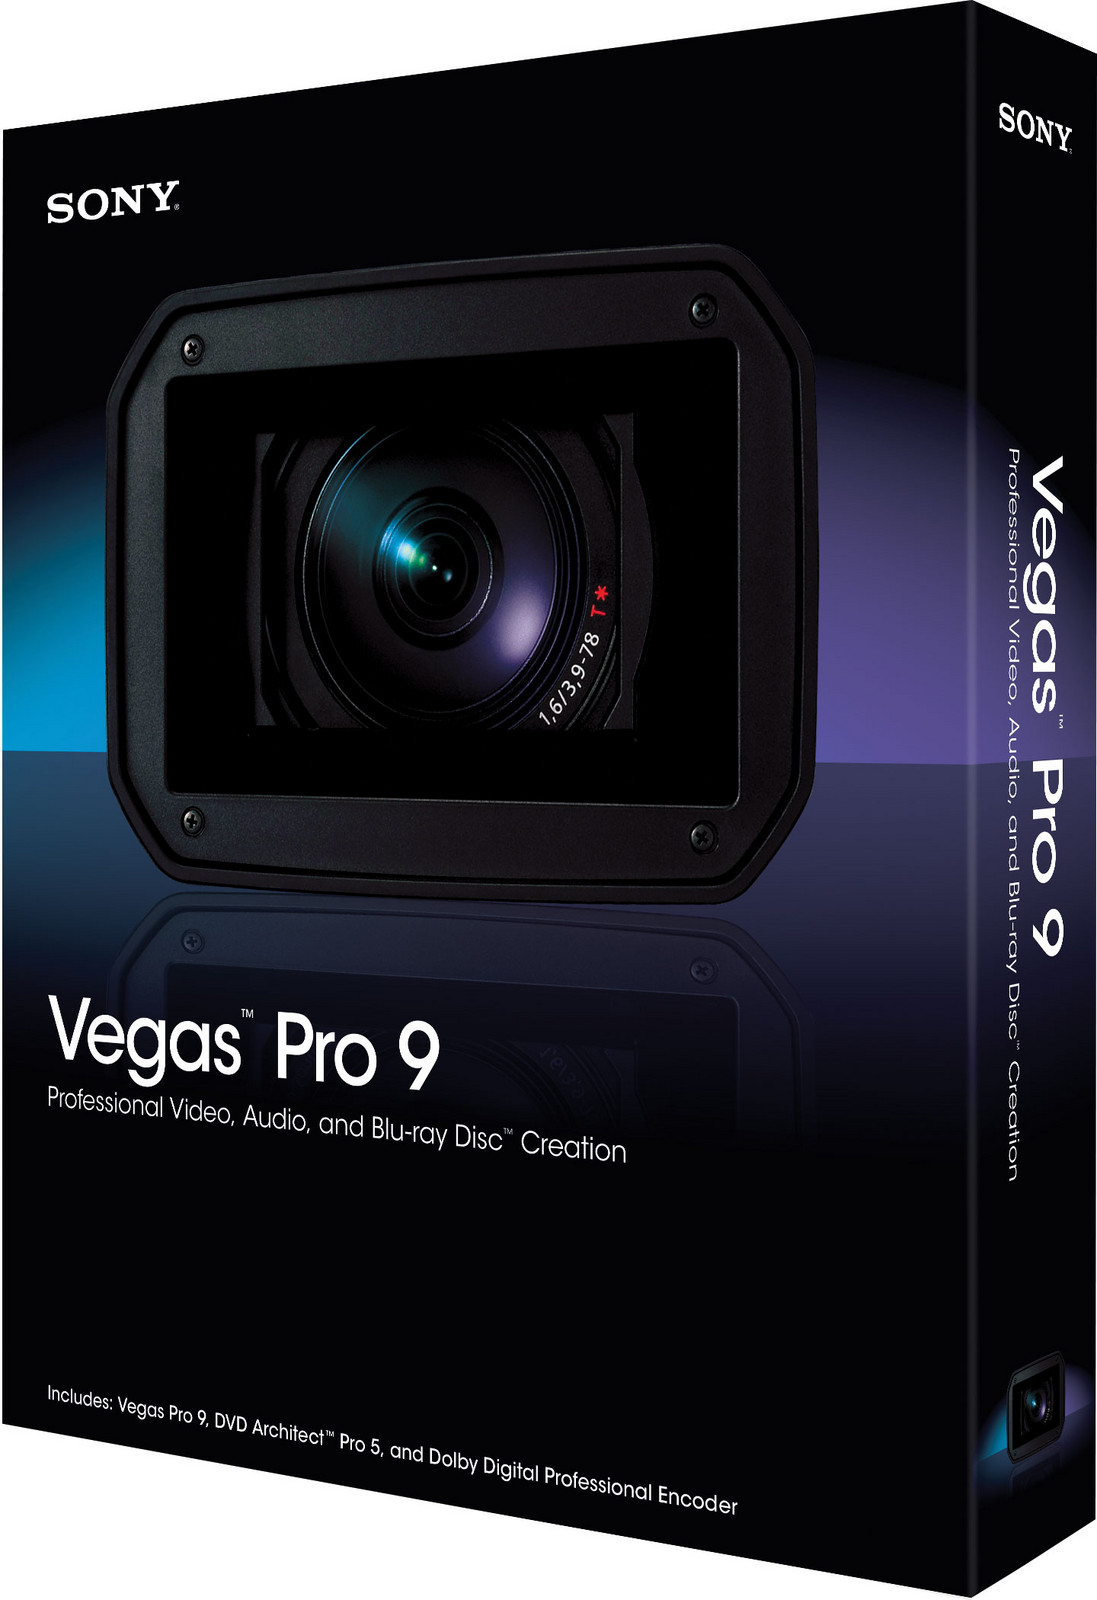 Sony vegas pro 9 software free download full version for Sony vegas pro 9 templates free download